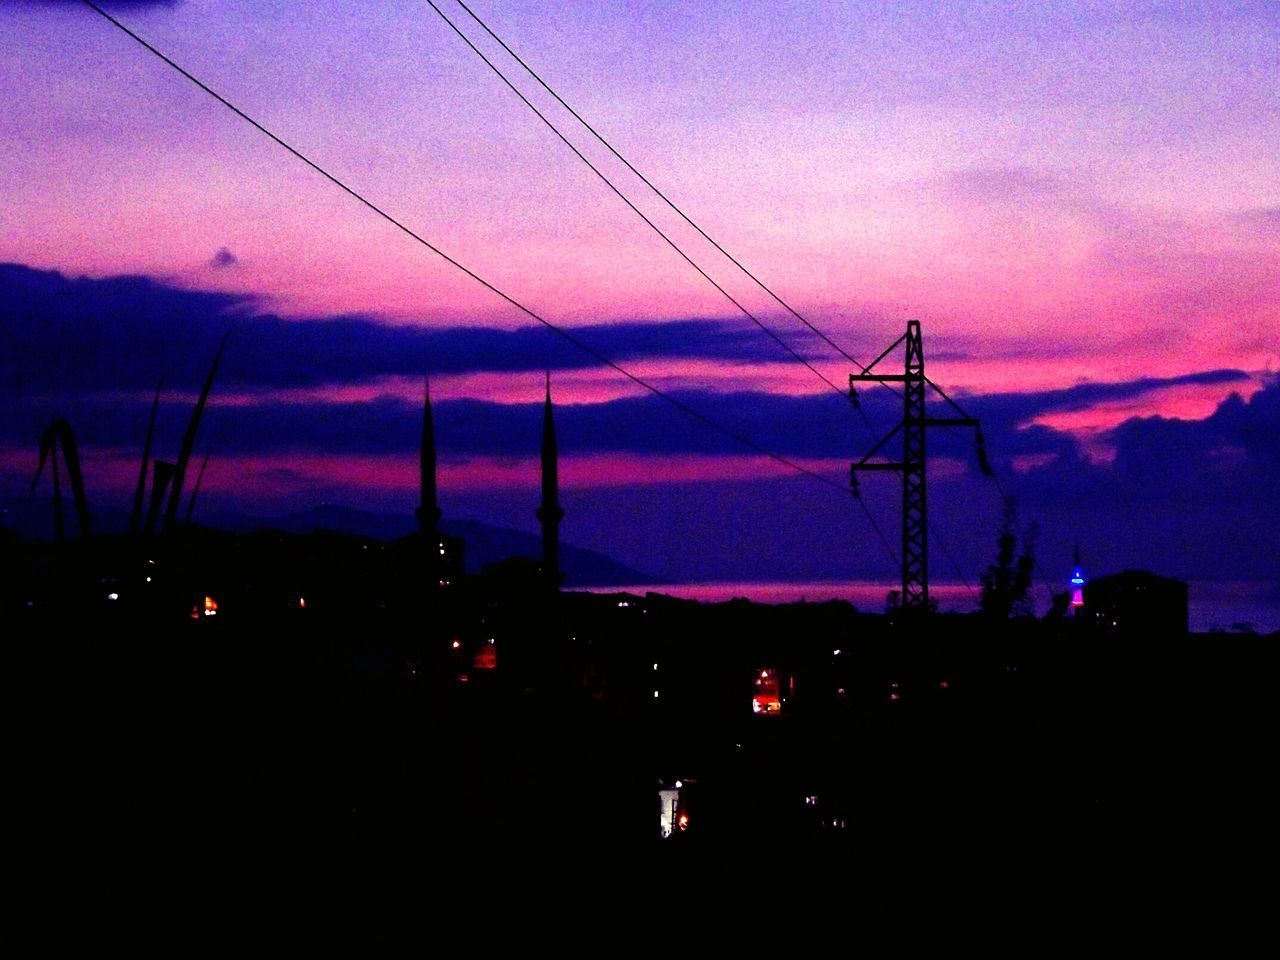 SILHOUETTE ELECTRICITY PYLON AGAINST DRAMATIC SKY AT SUNSET